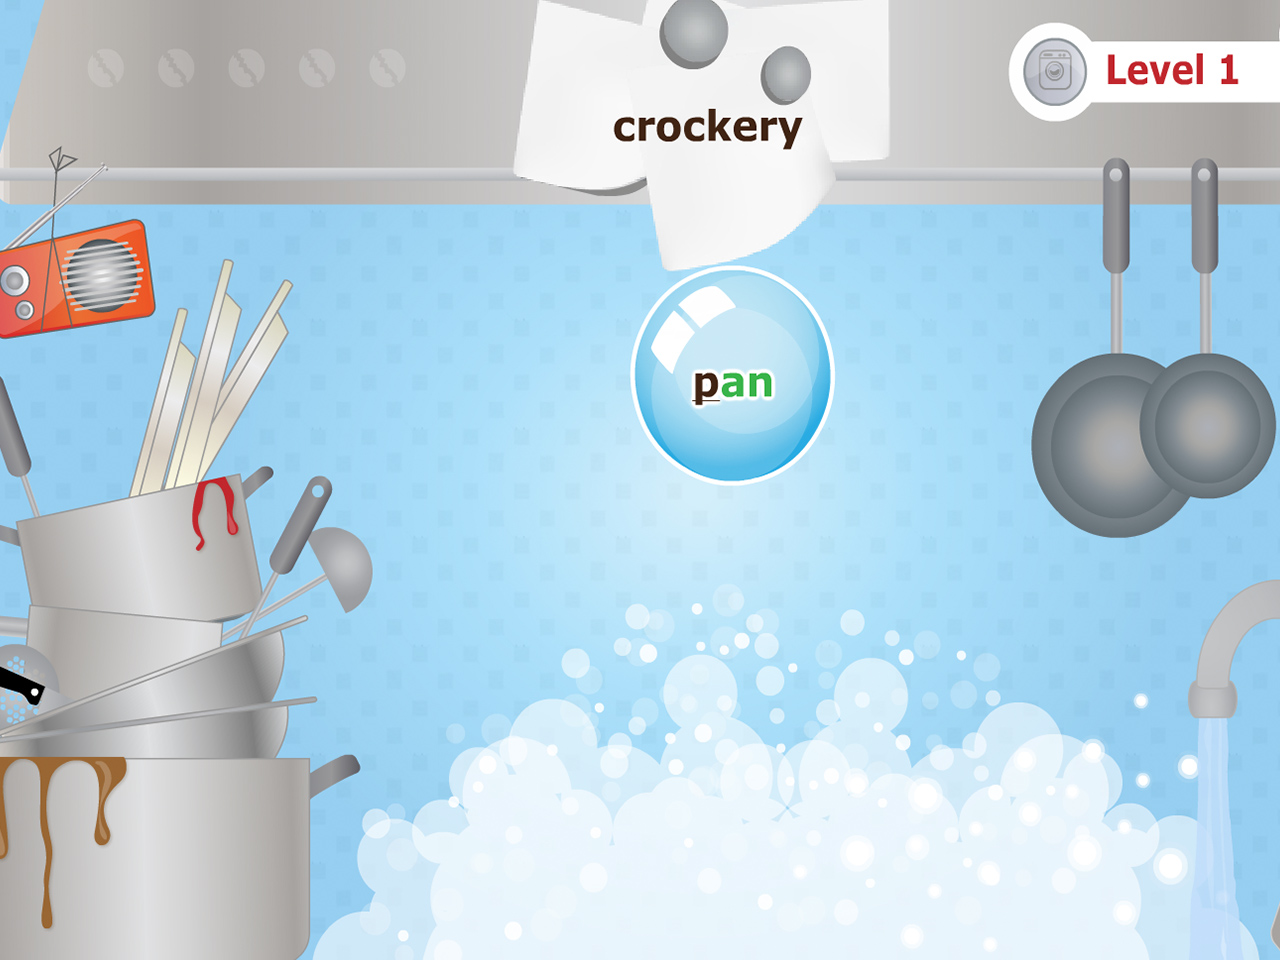 A still from the typing game Typing Chef